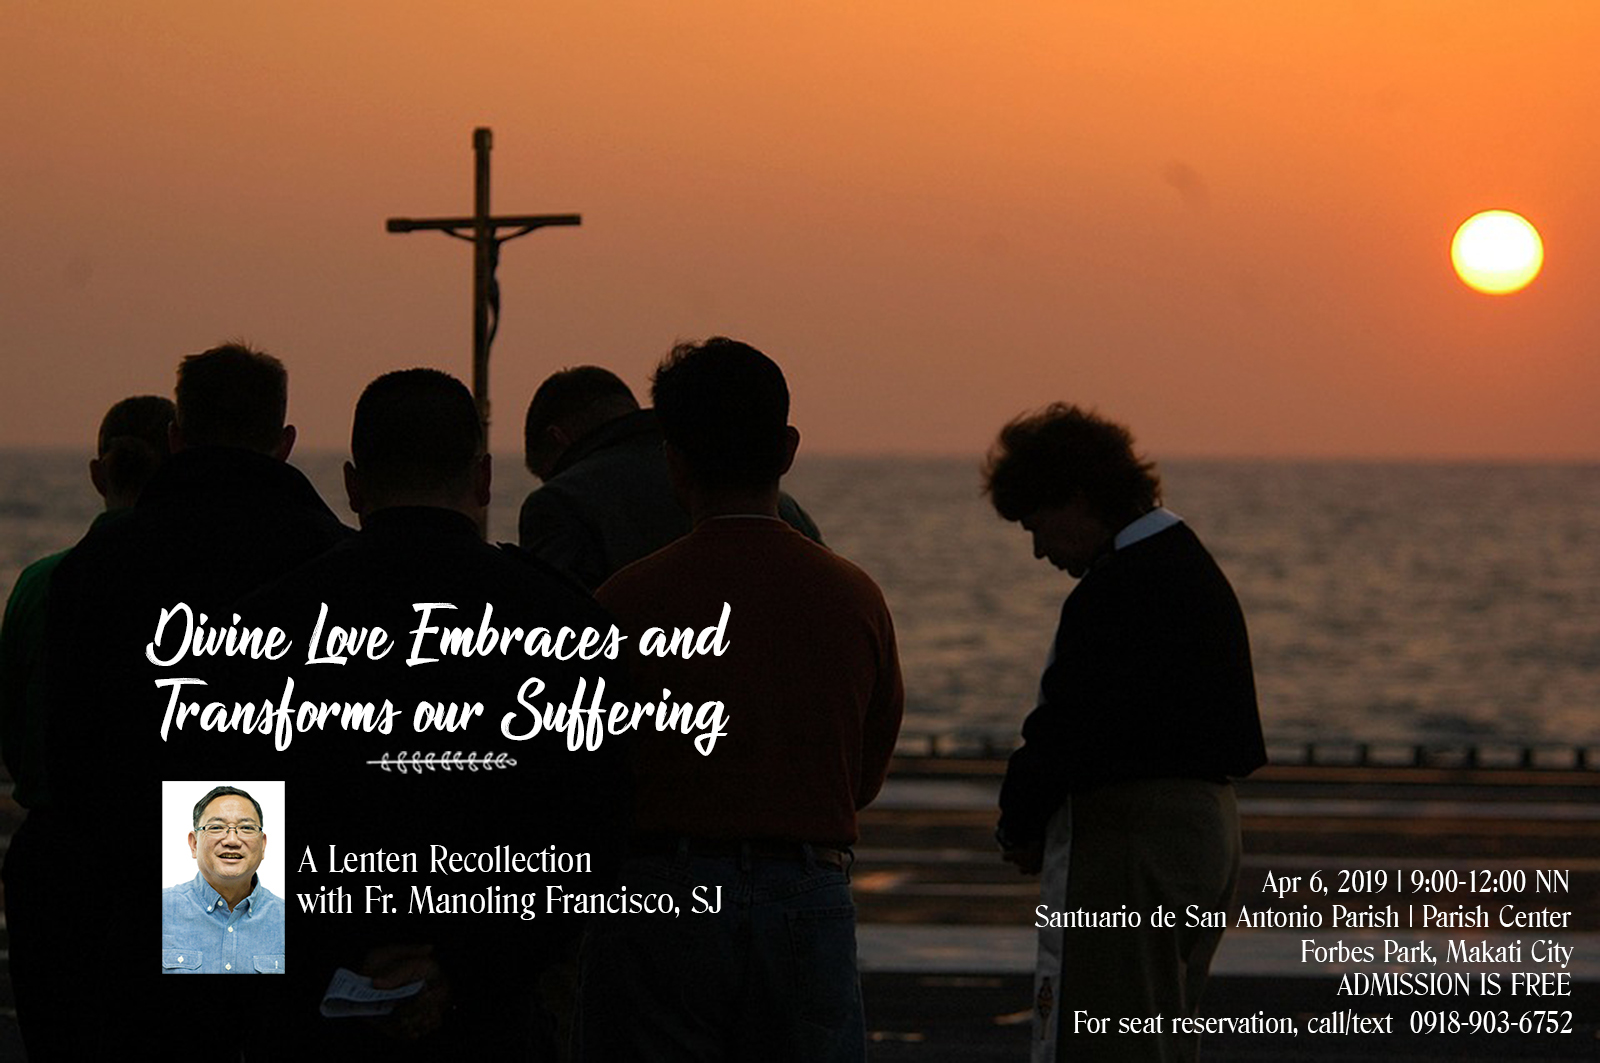 SSAP_Lenten_Recollection_for_website.jpg